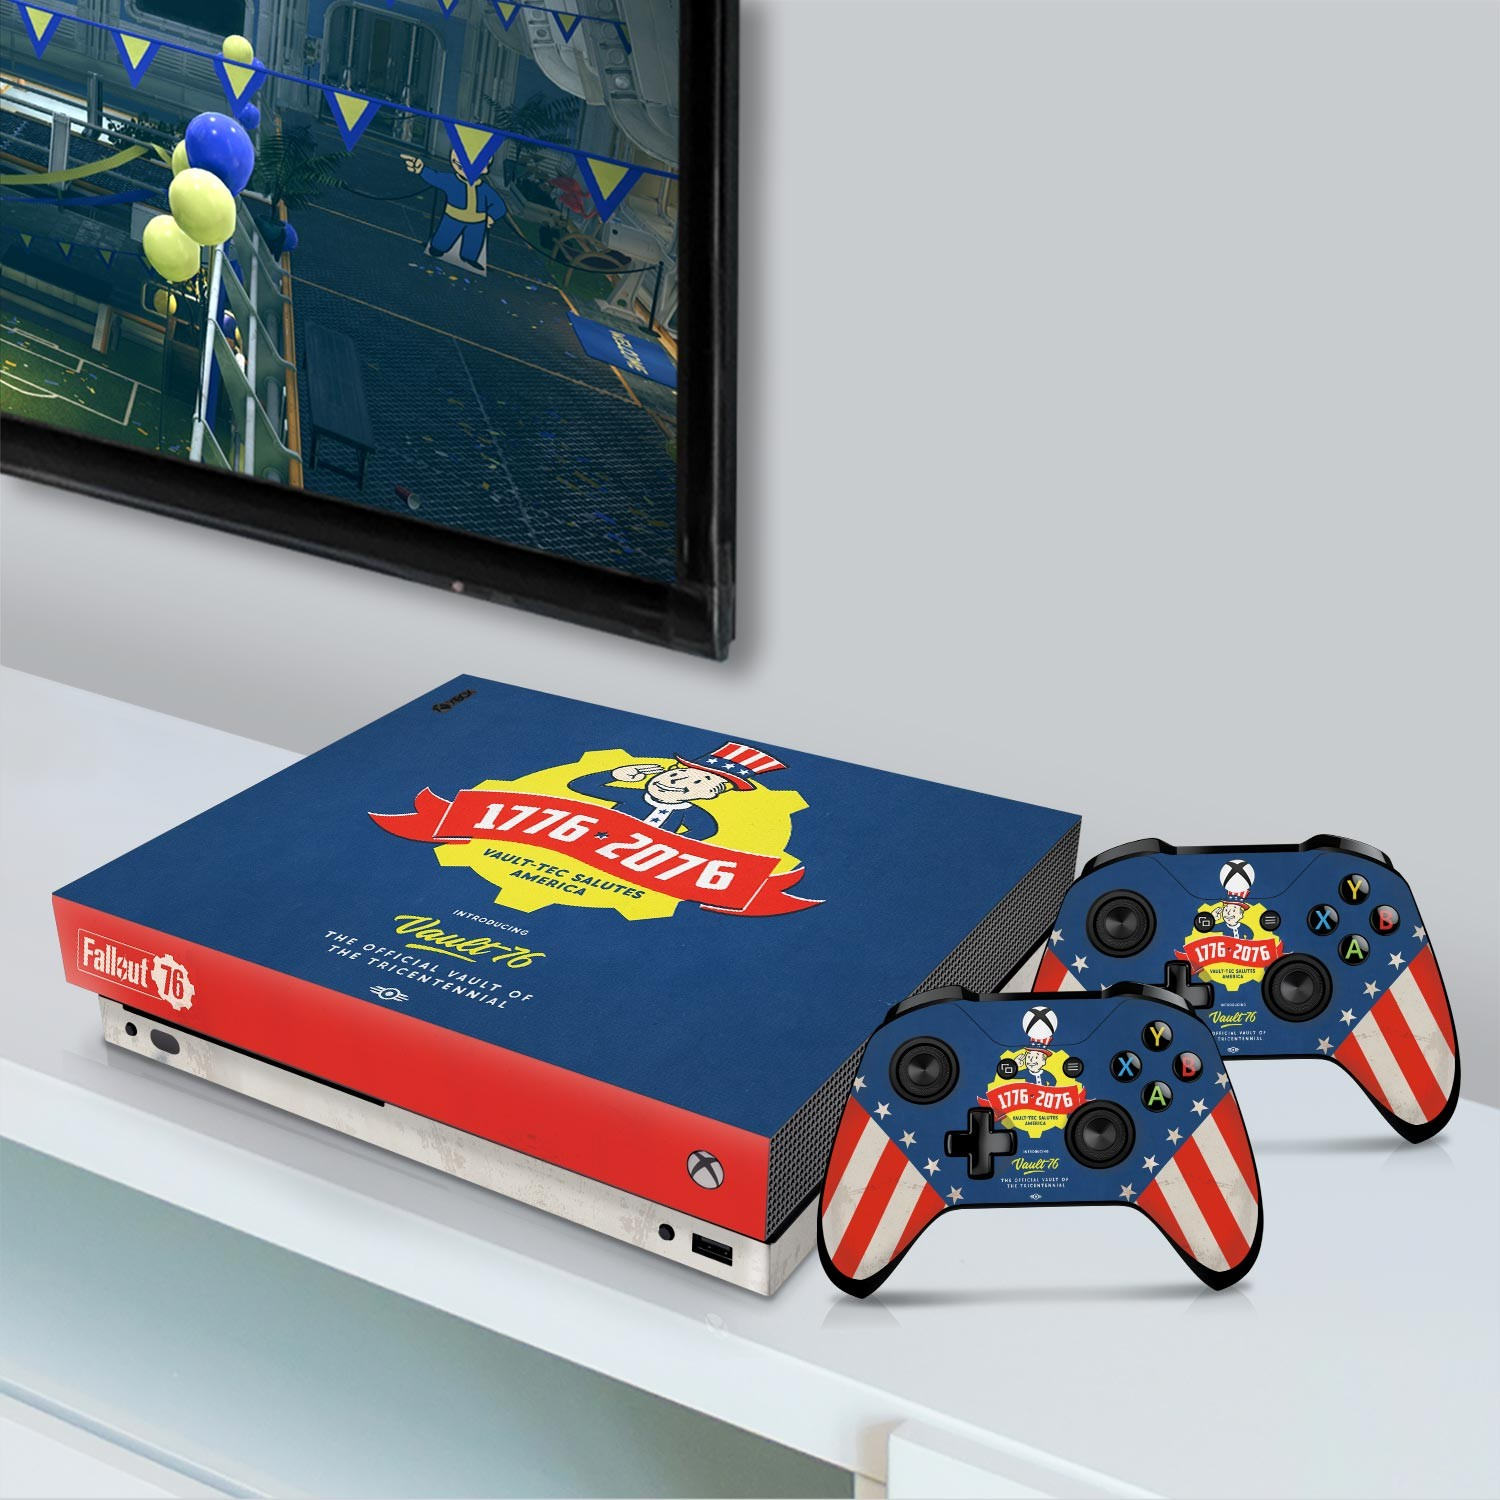 Officially Licensed Console Skin Bundle for Xbox One X - Fallout 76 - Tricentennial